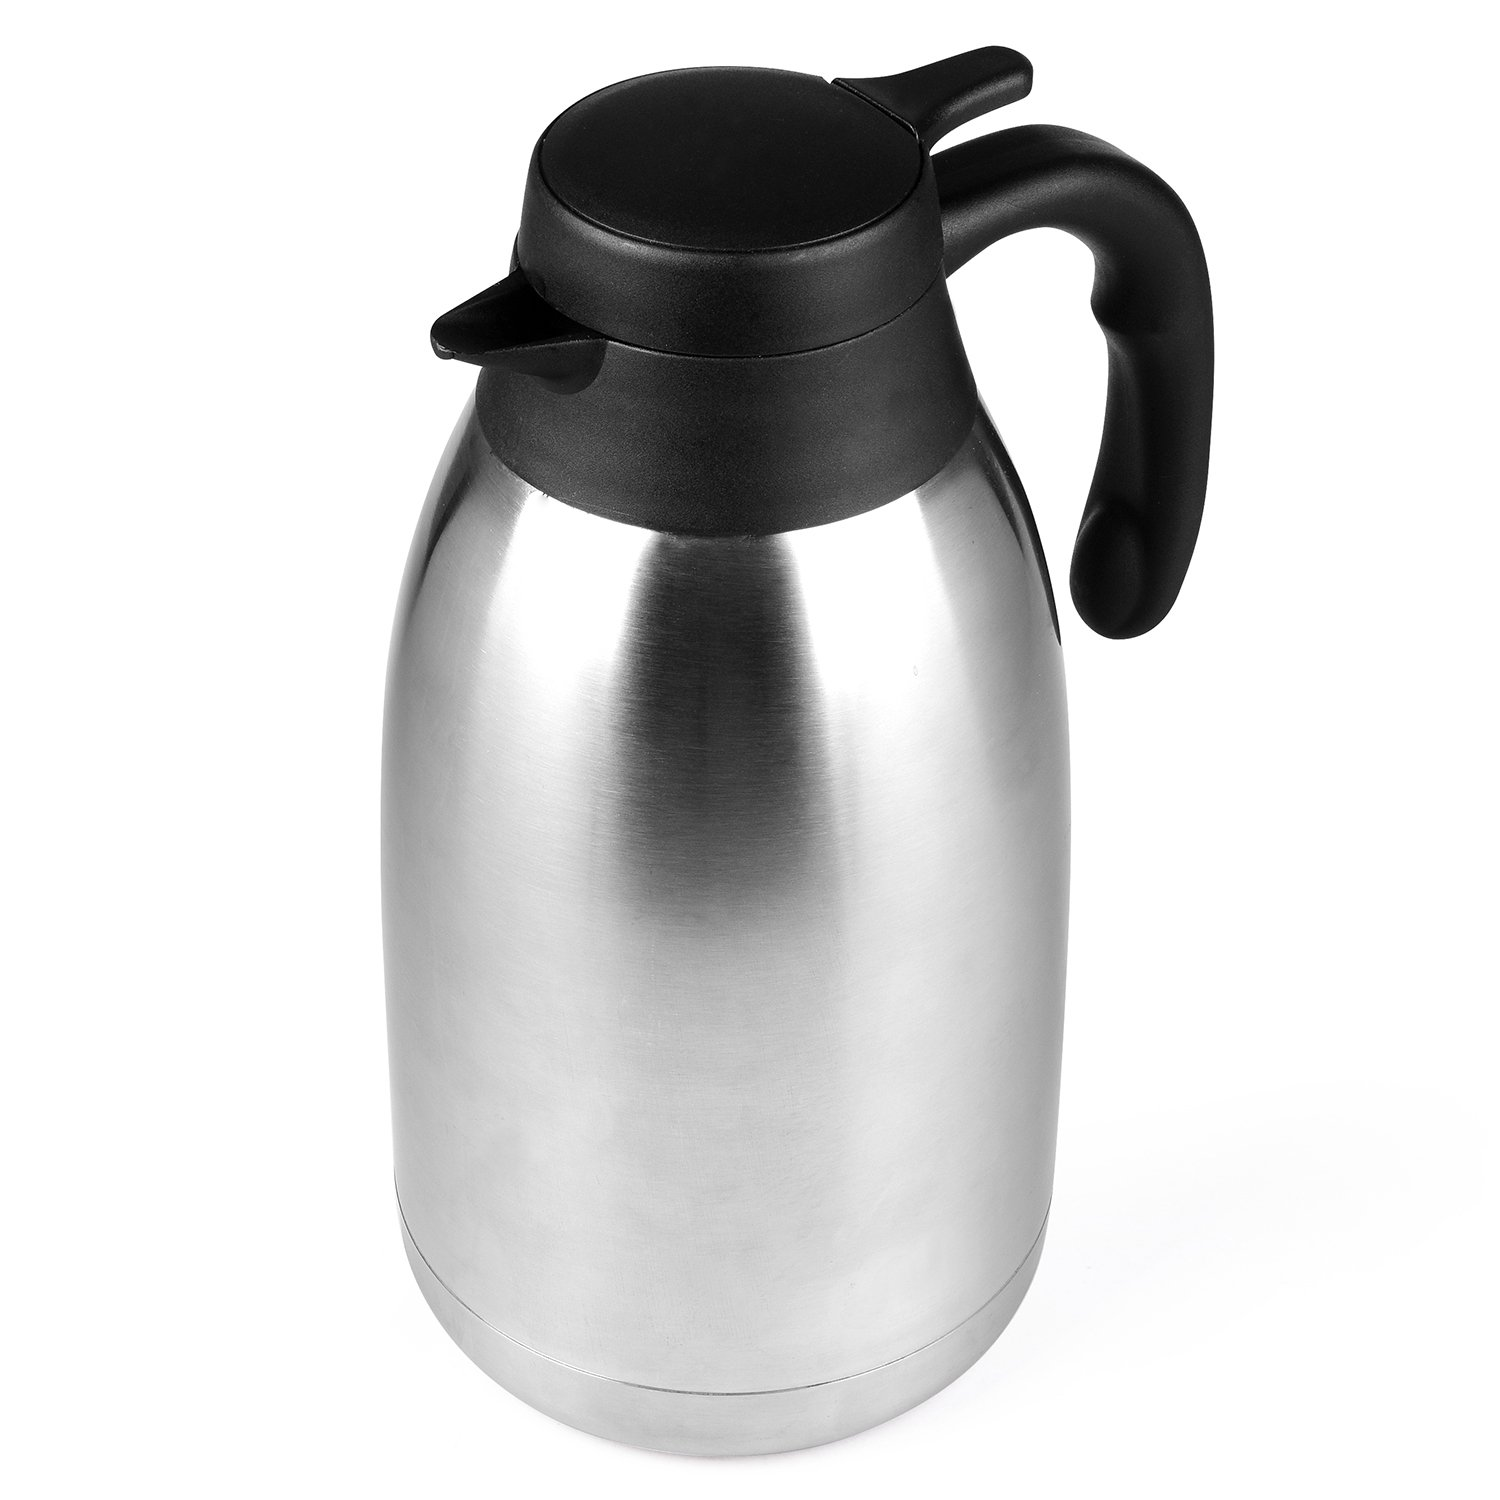 68 Oz Stainless Steel Thermal Coffee Carafe/Double Walled Vacuum Thermos / 12 Hour Heat Retention / 2 Litre by Cresimo by Cresimo (Image #8)